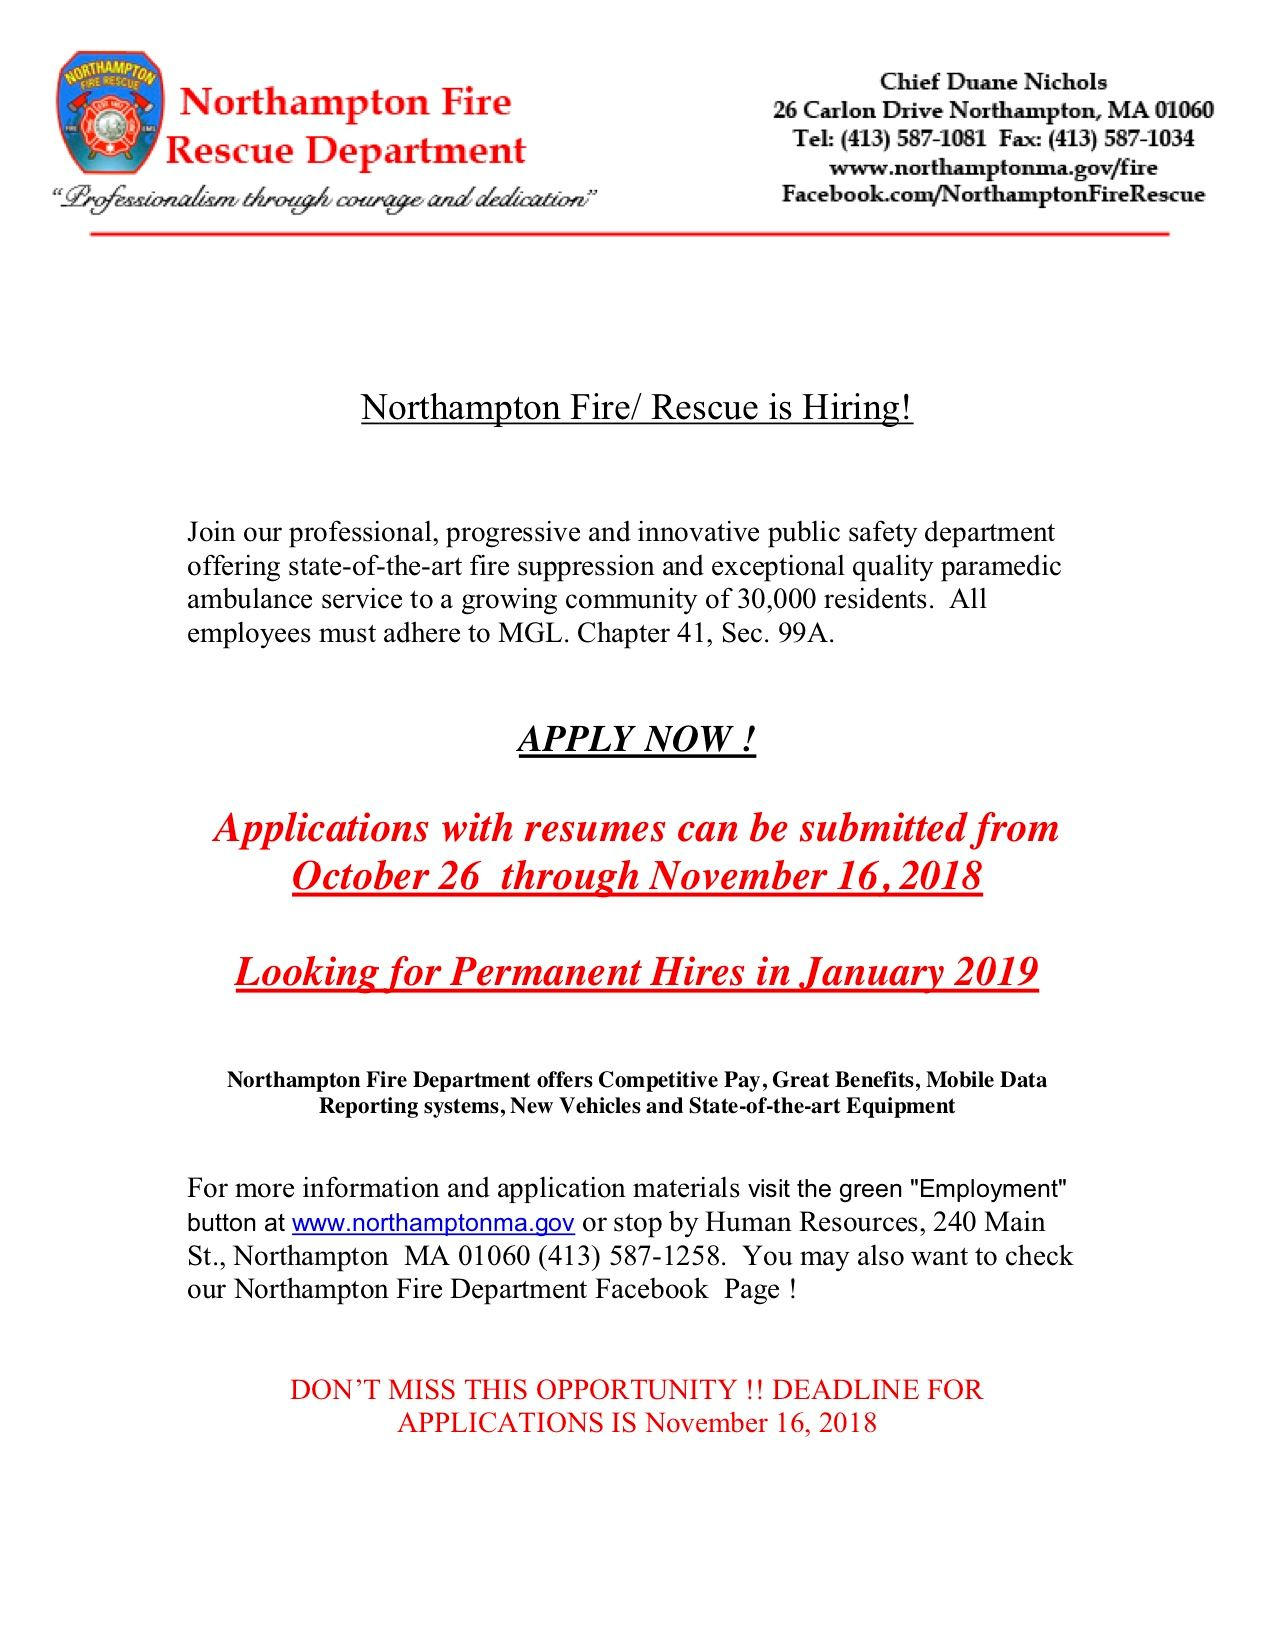 NFR is Hiring 2018